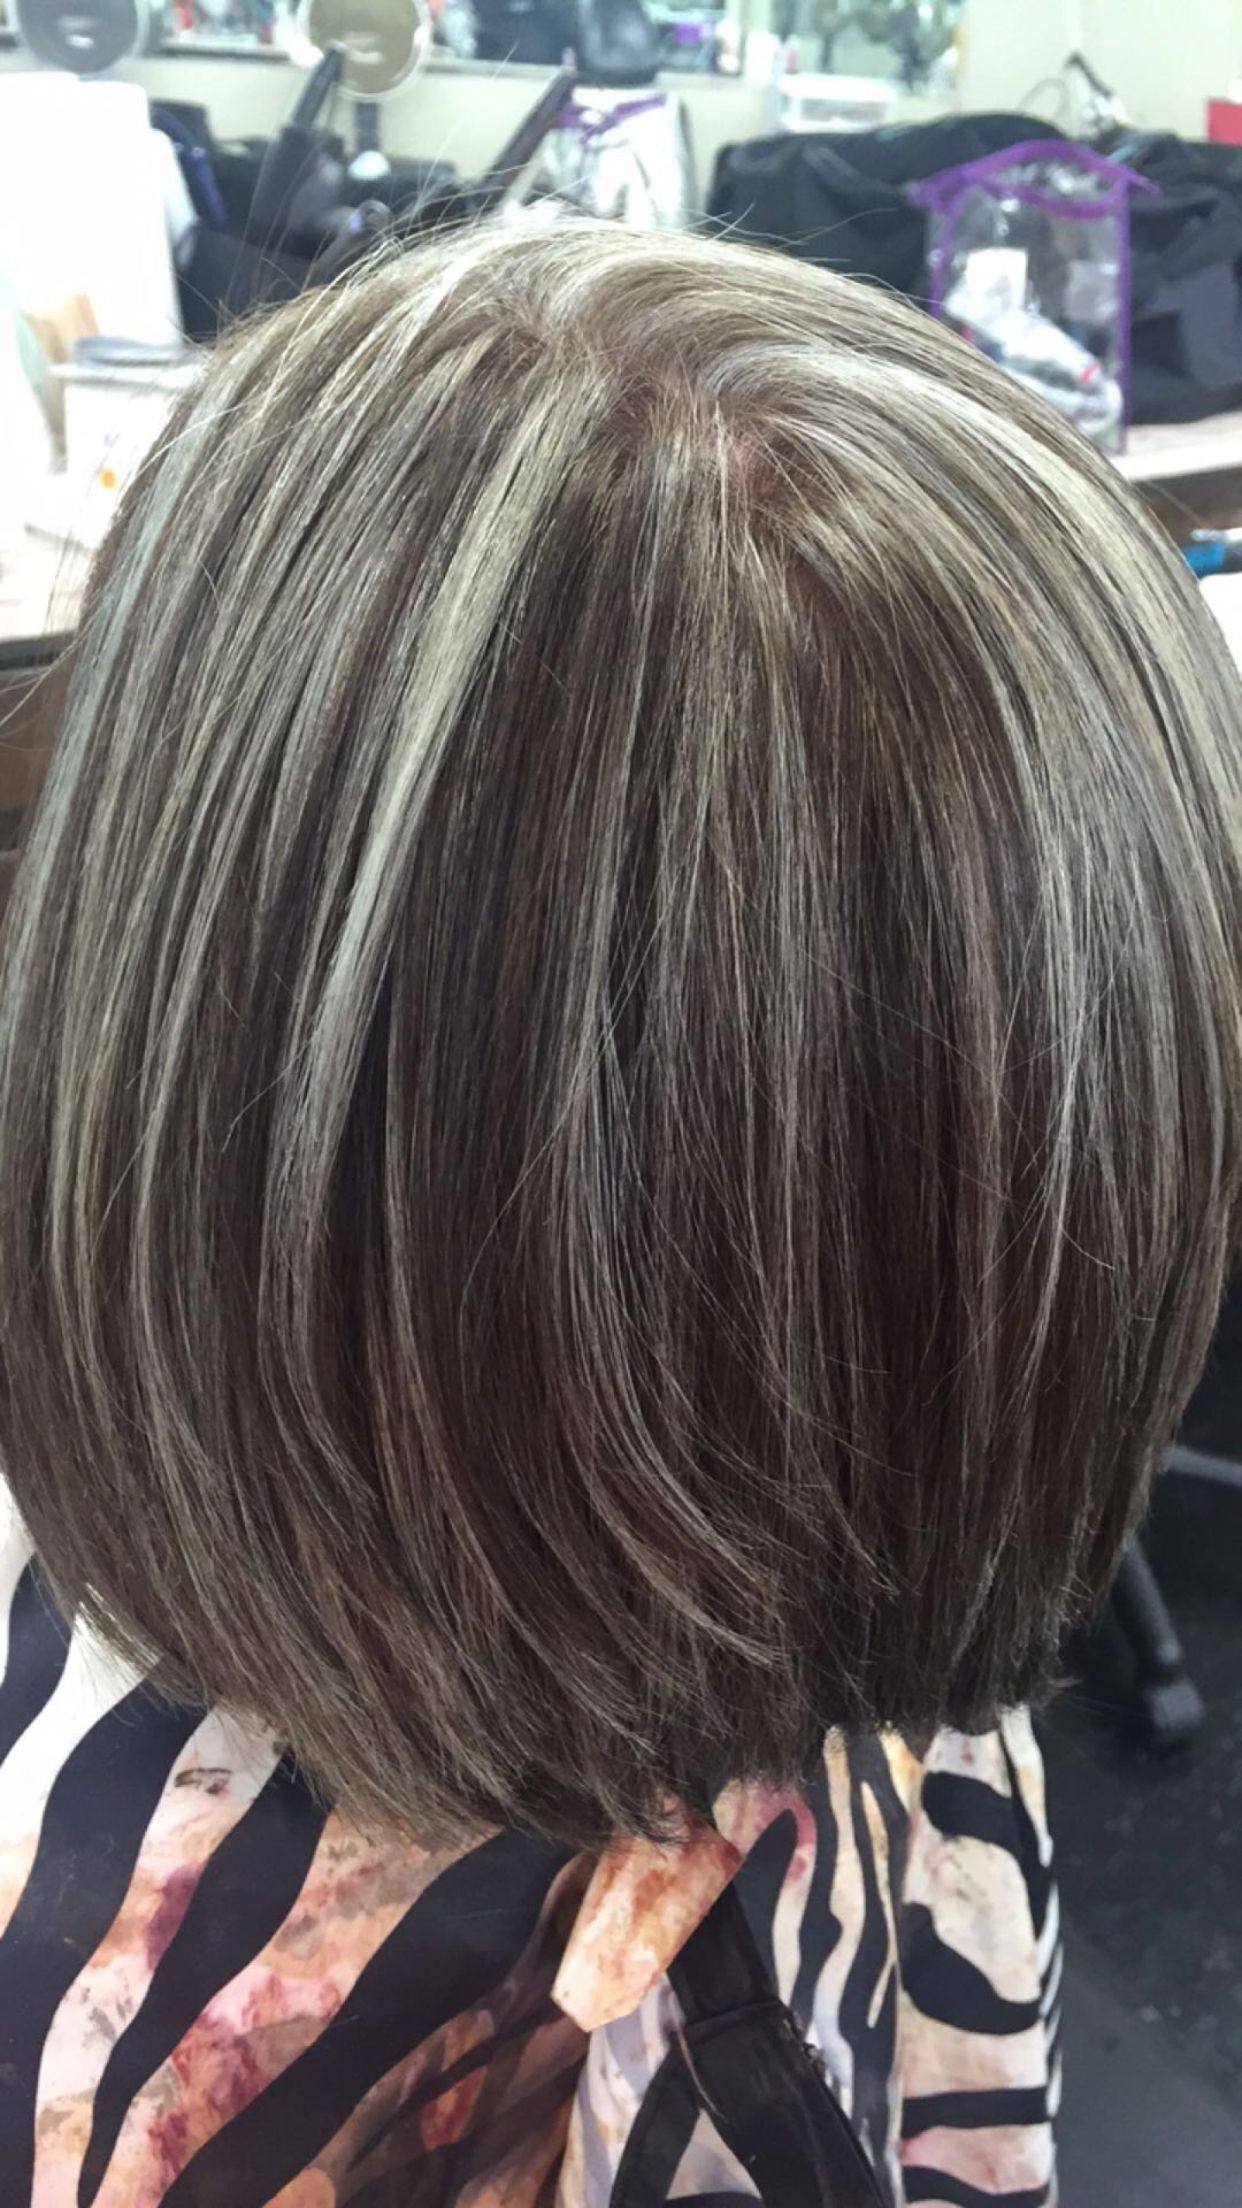 Silver Highlights Haircydgoes Blending Gray Hair Hair Highlights Transition To Gray Hair